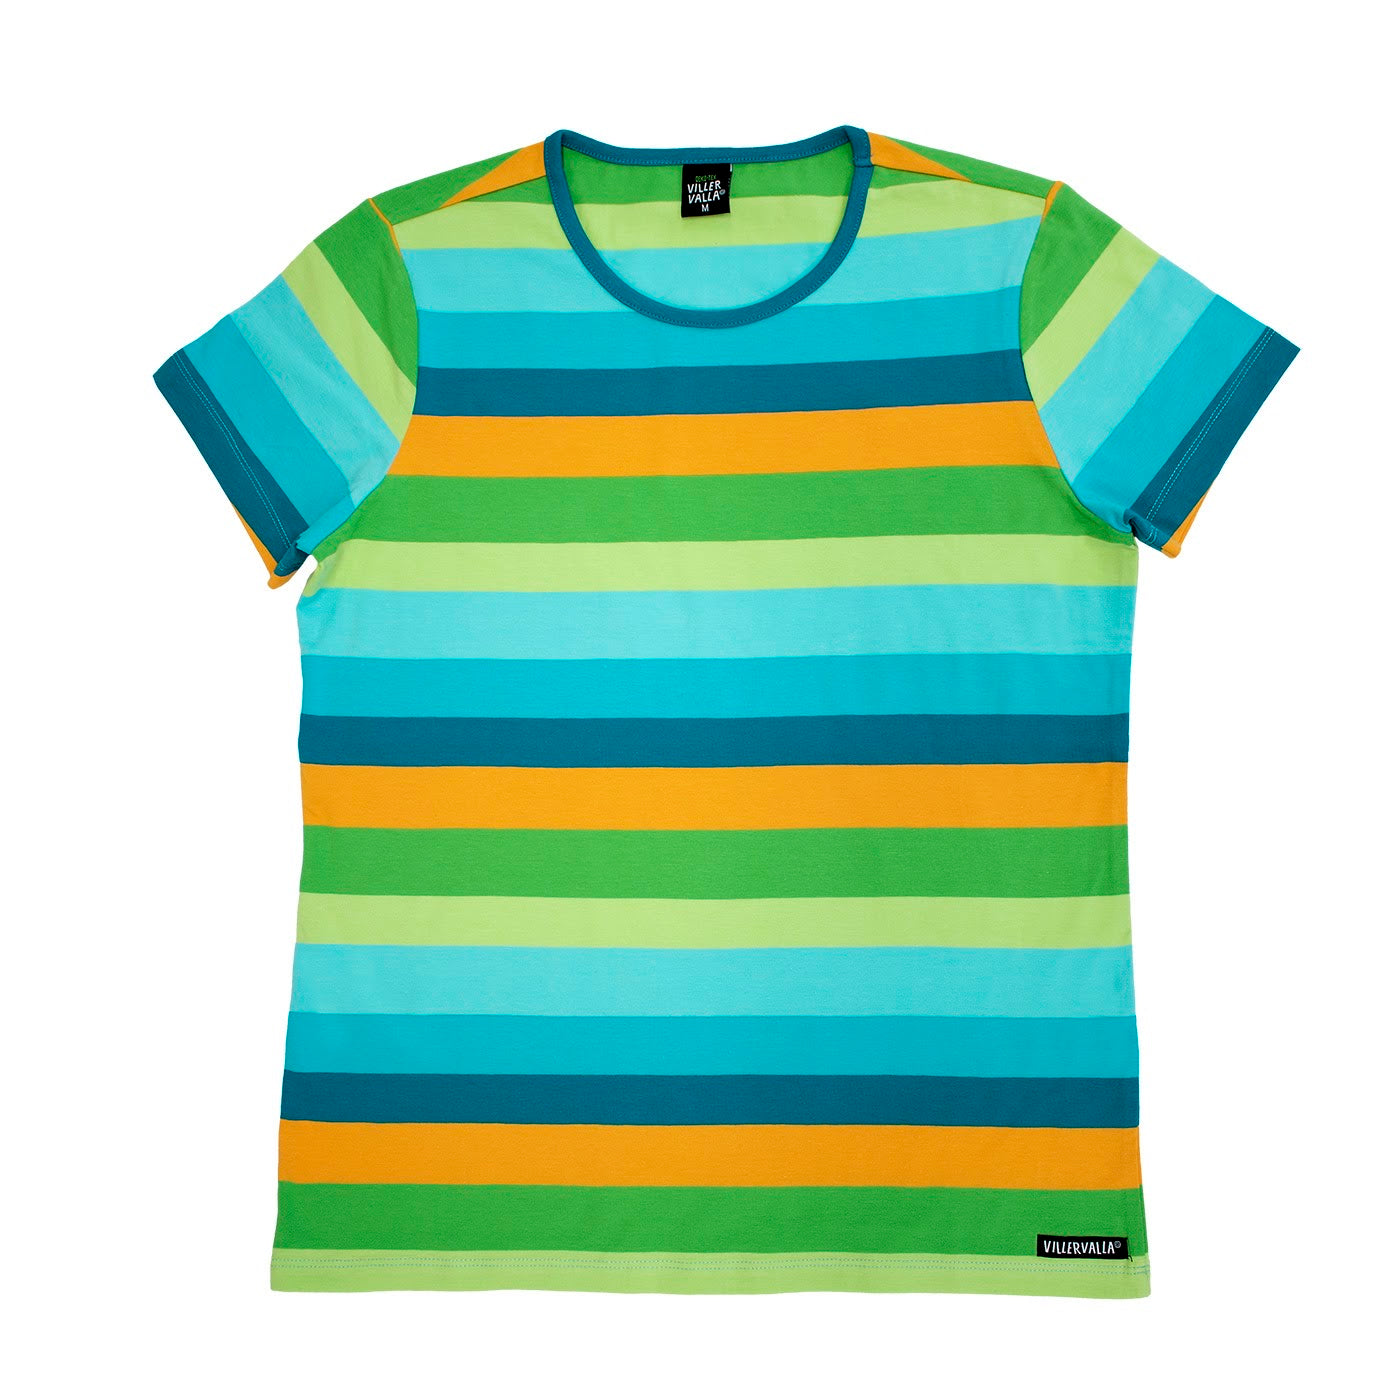 Villervalla Adults Bondi Stripe Top